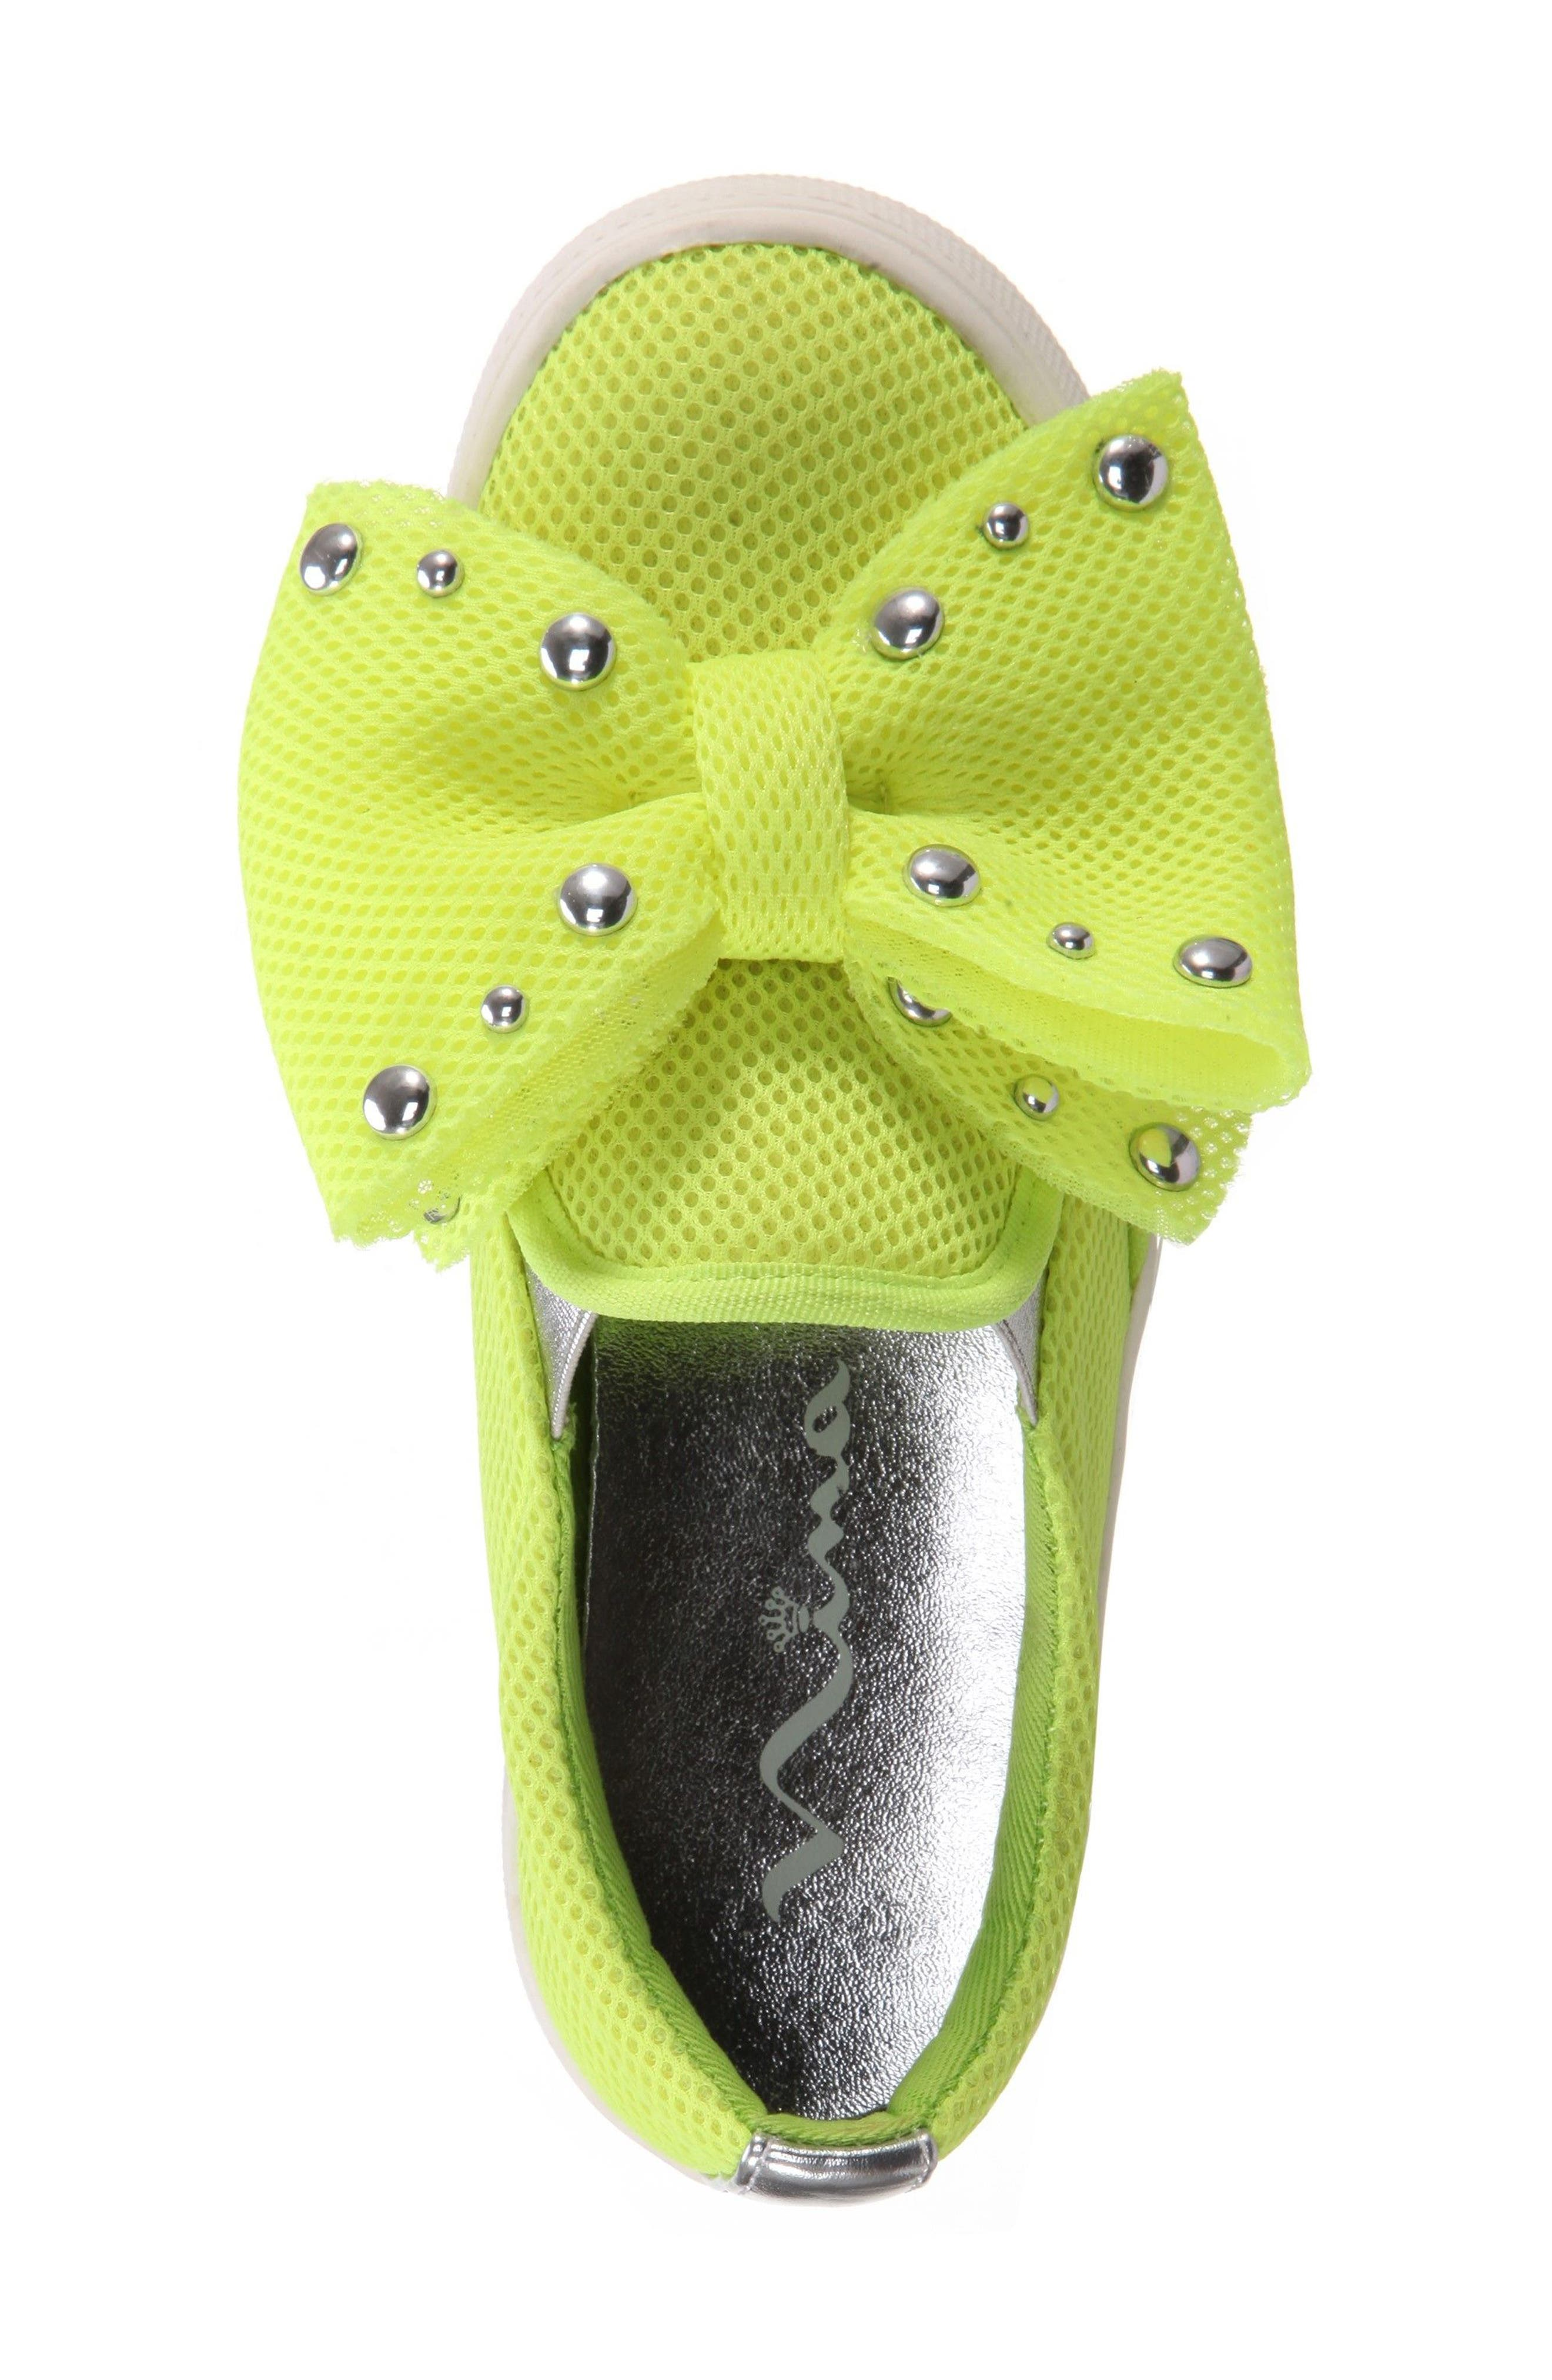 Mary Bow Slip-On Sneaker,                             Alternate thumbnail 5, color,                             Neon Yellow Mesh